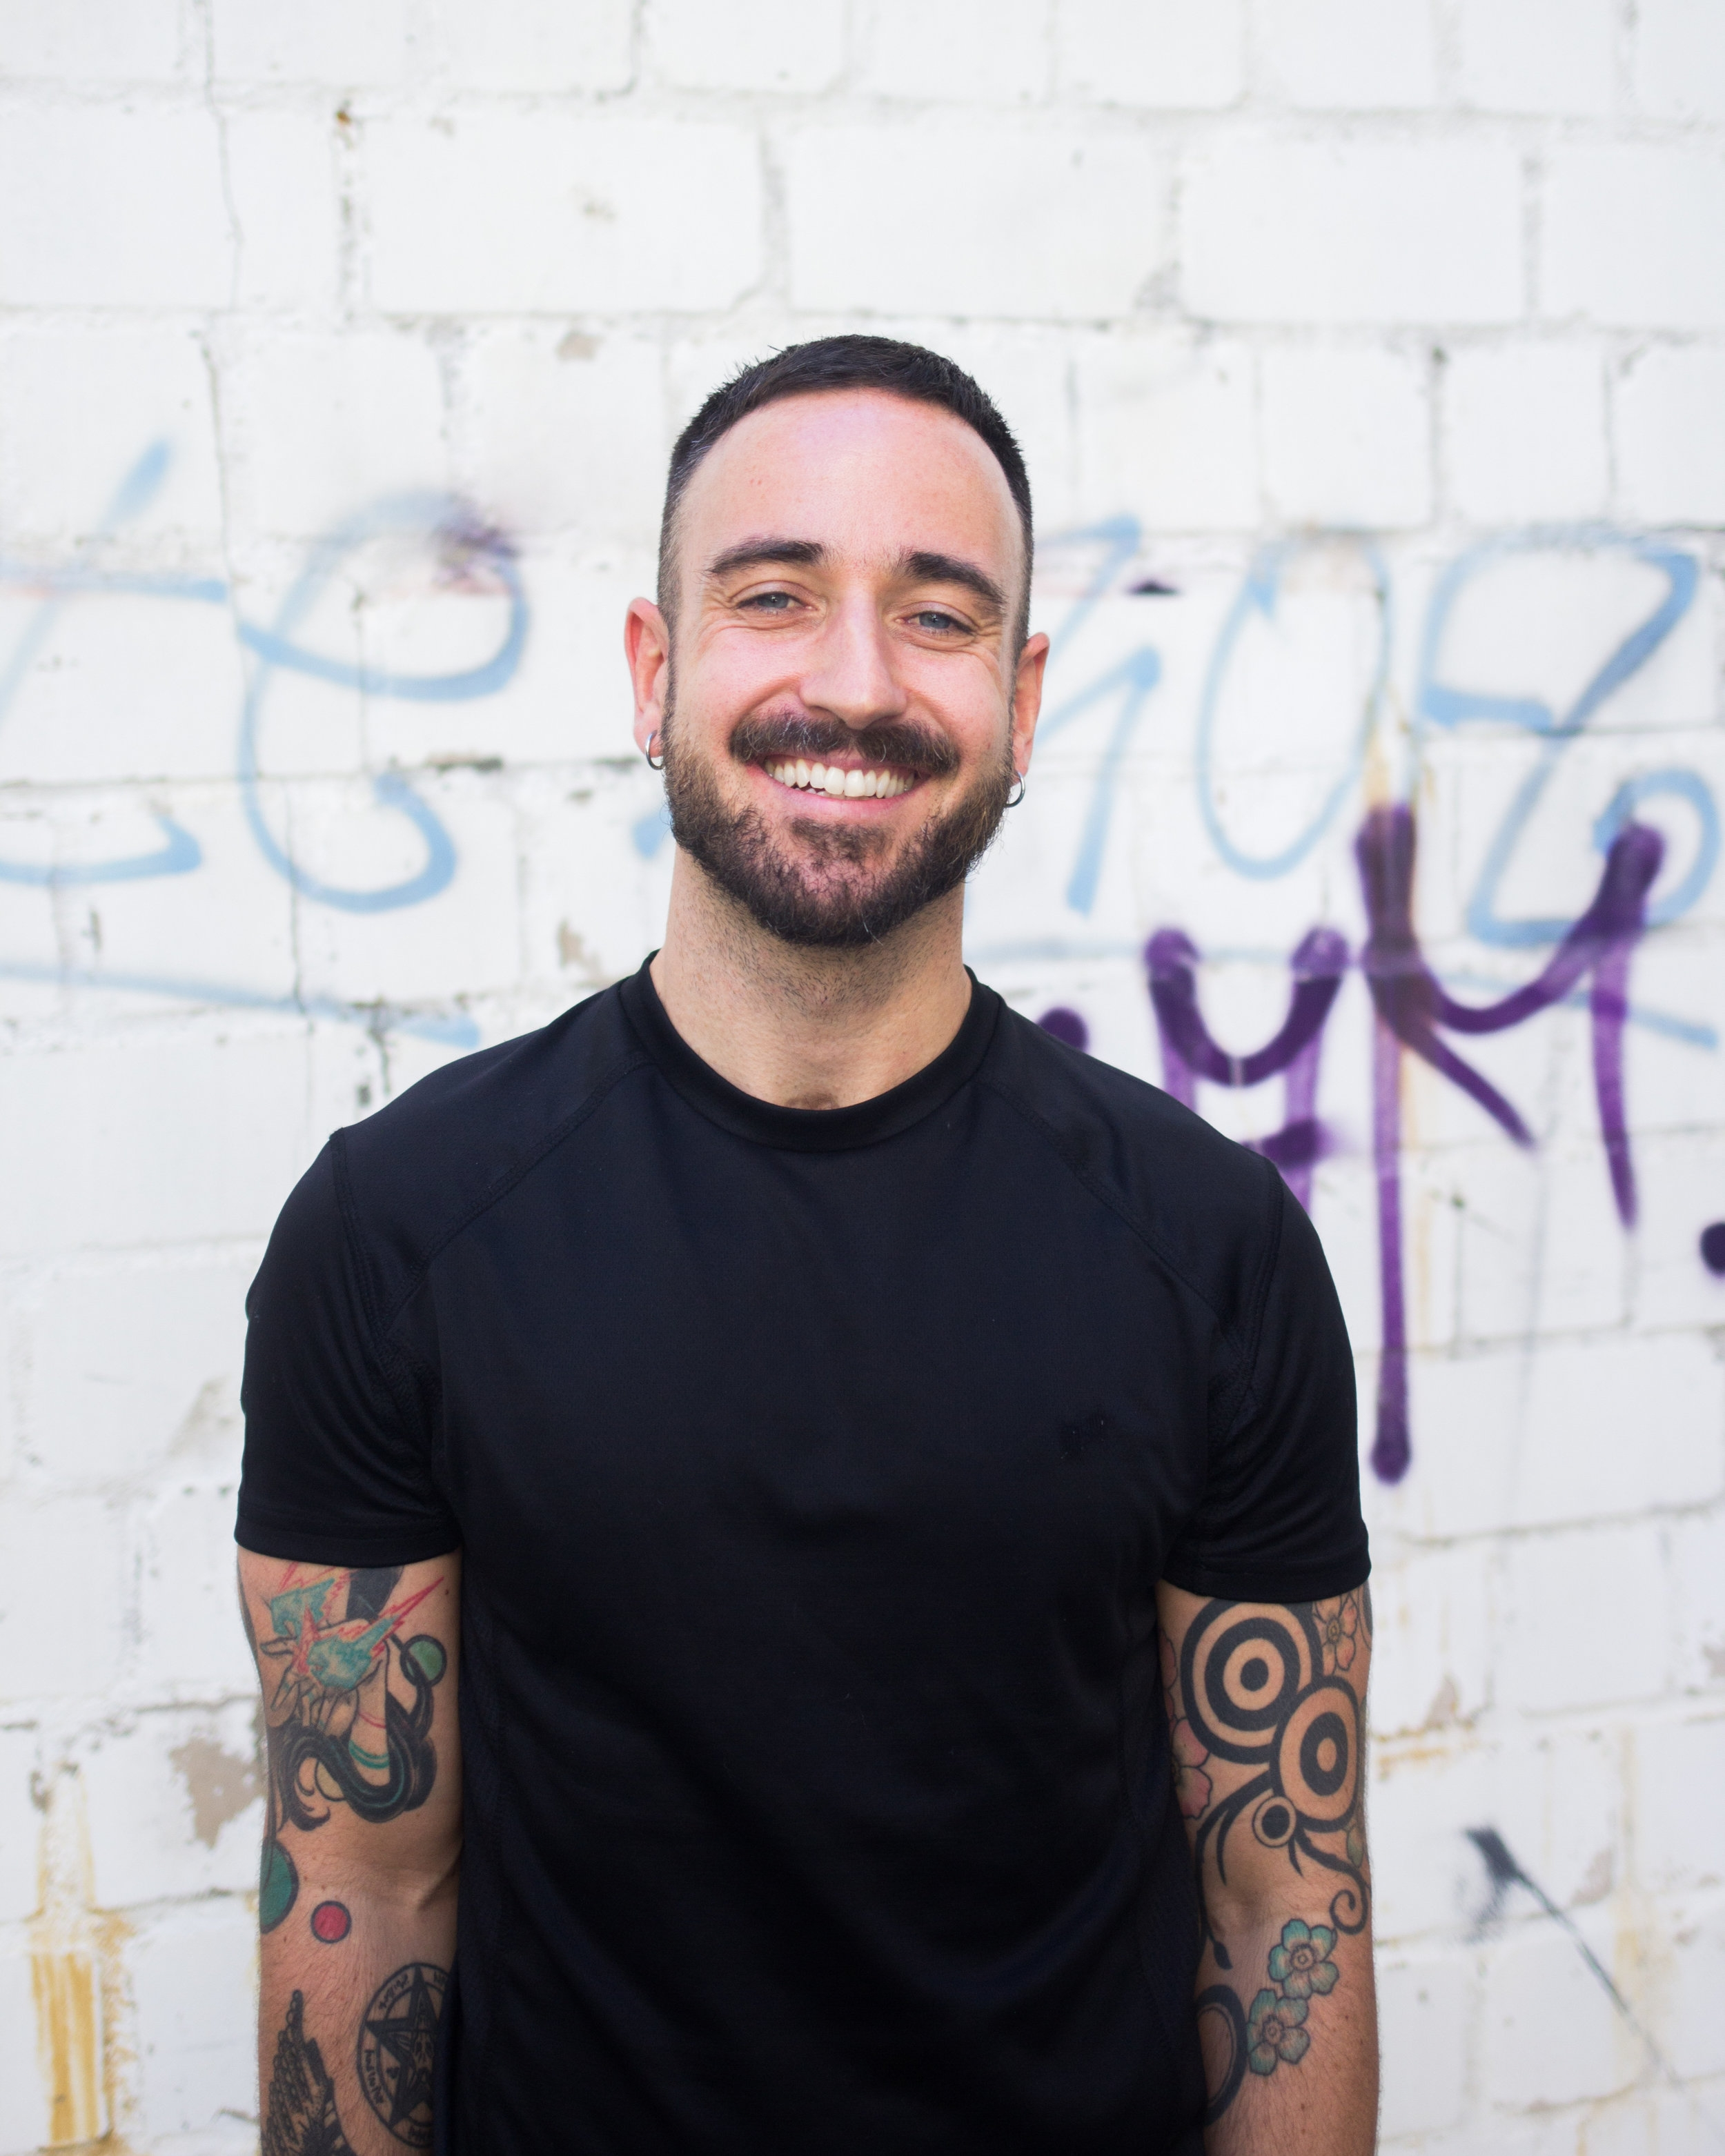 CONFIDENT CRAIG - This Welsh native has been a fitness fanatic all his life, and as a certified Stages Cycling instructor and power yoga teacher, he knows how to push your body to its limits during his RIDE class. Craig loves underground, electronic music, so prepare to be transported to a Berlin club as soon as you walk through the door!